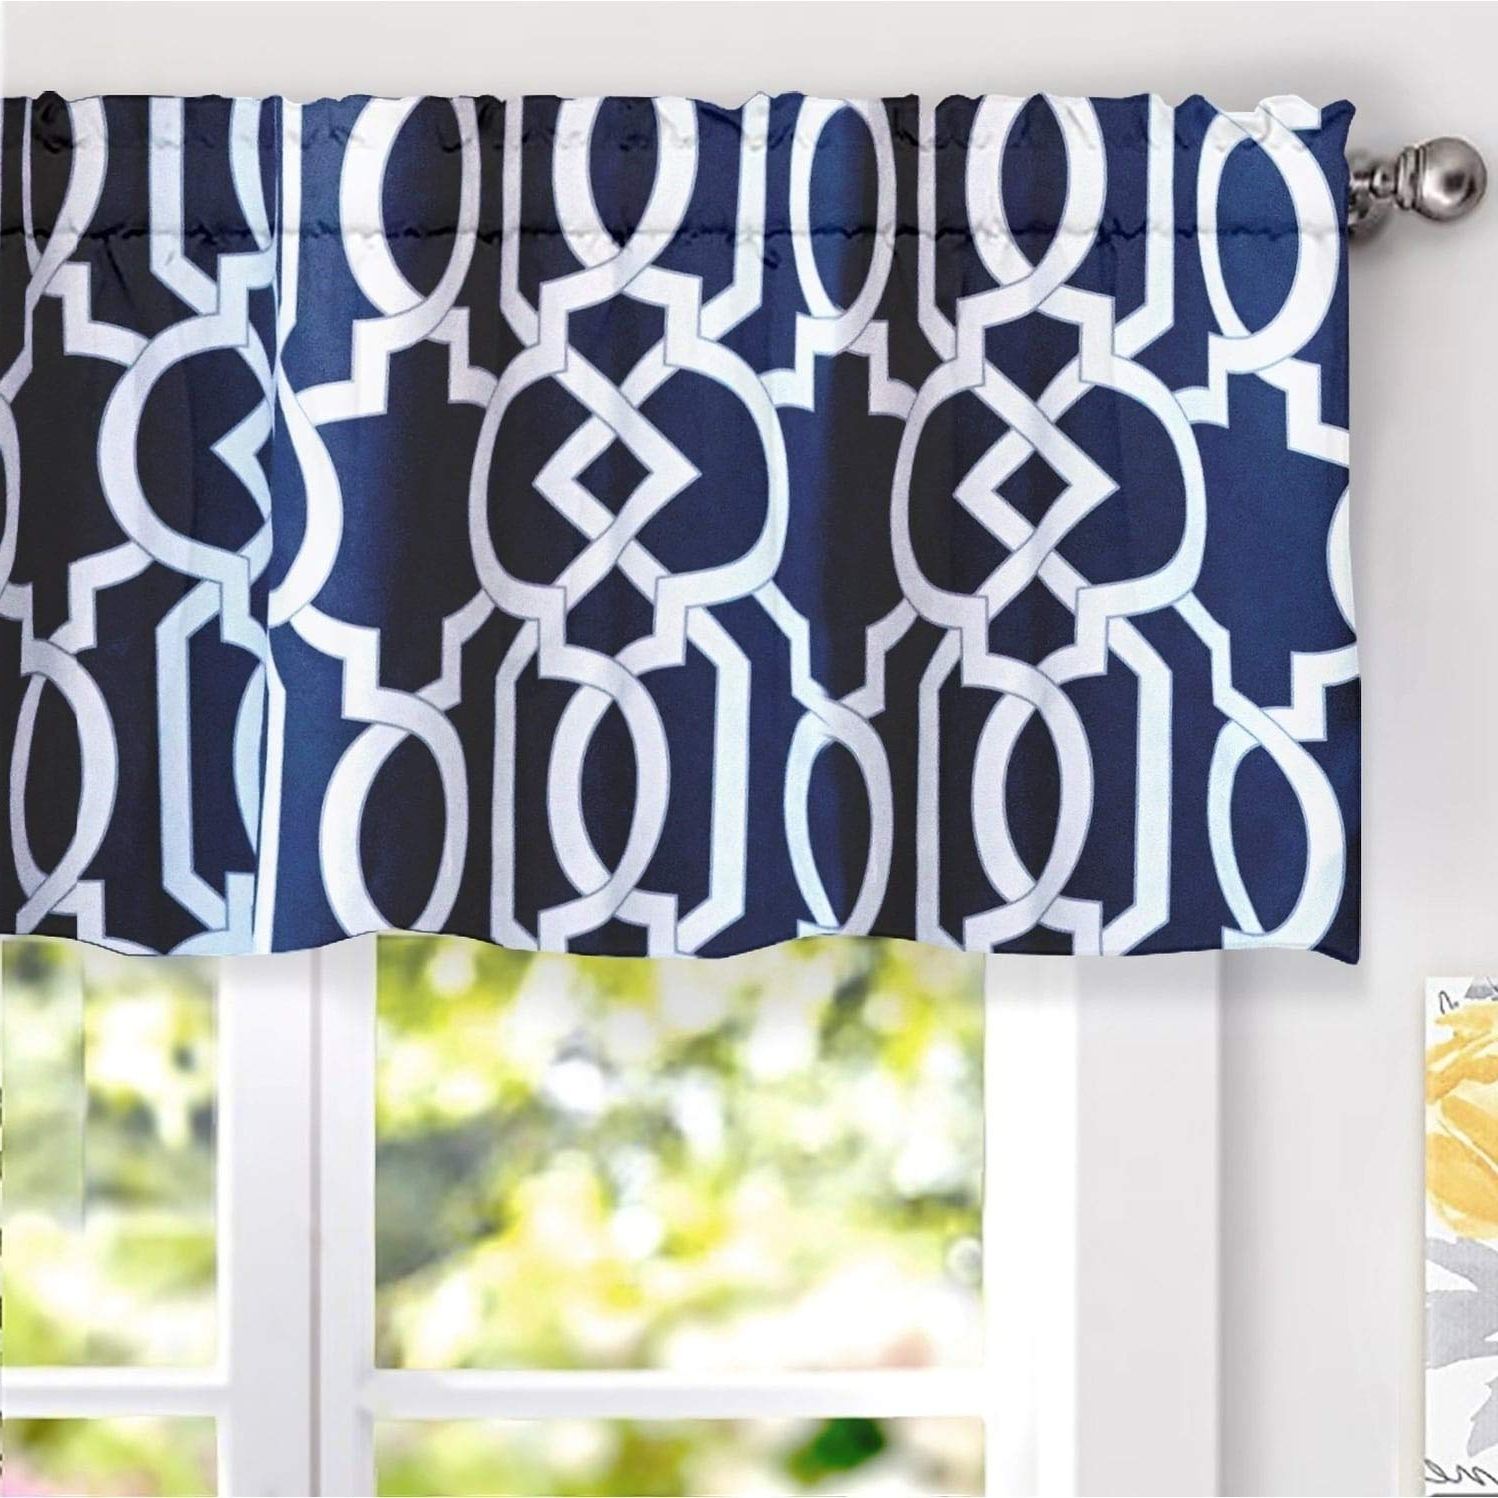 Driftaway Abigail Geometric Trellis Pattern Window Curtain Valance Rod Pocket 52 Inch18 Inch Navy Intended For Latest Trellis Pattern Window Valances (View 1 of 20)